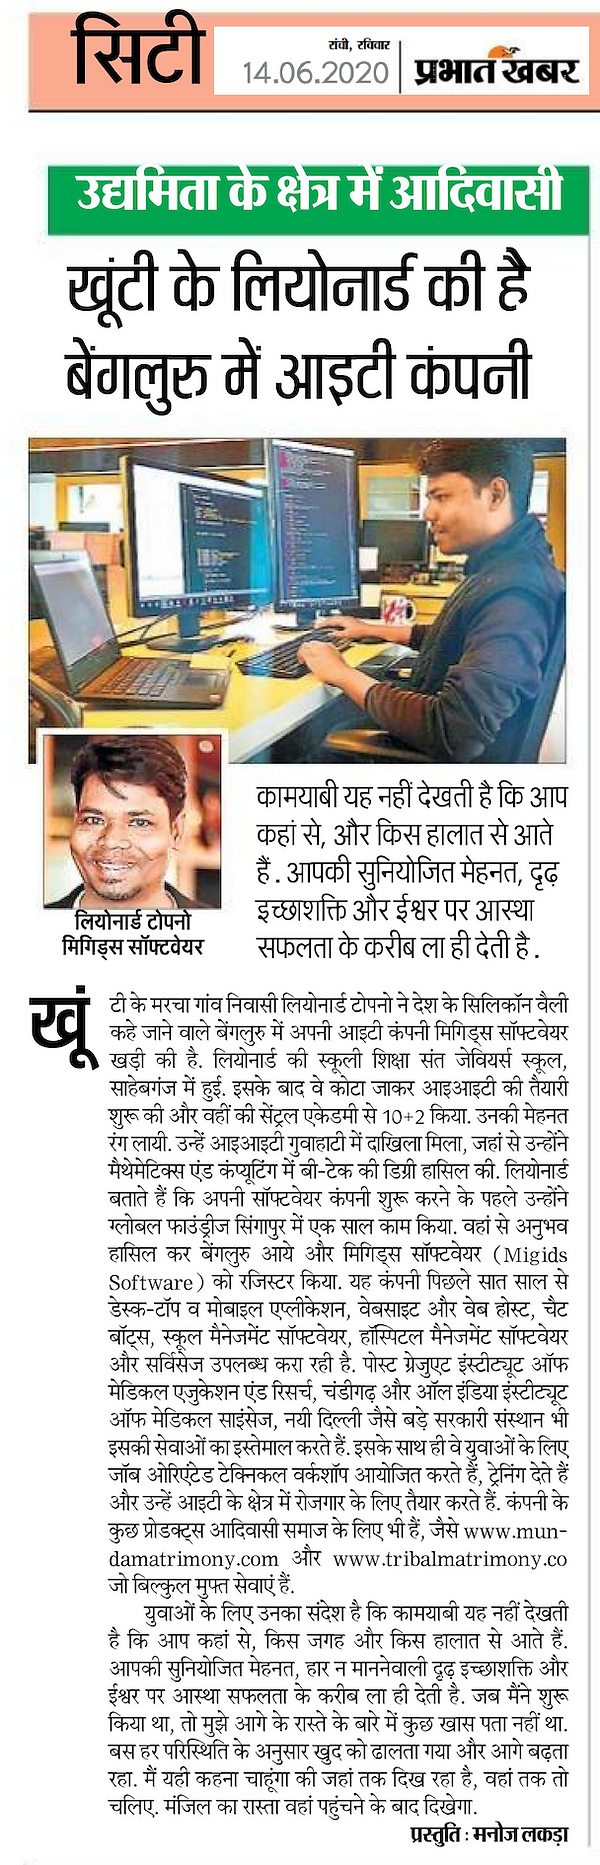 Prabhat Khabar dated 14-06-2020 Page No